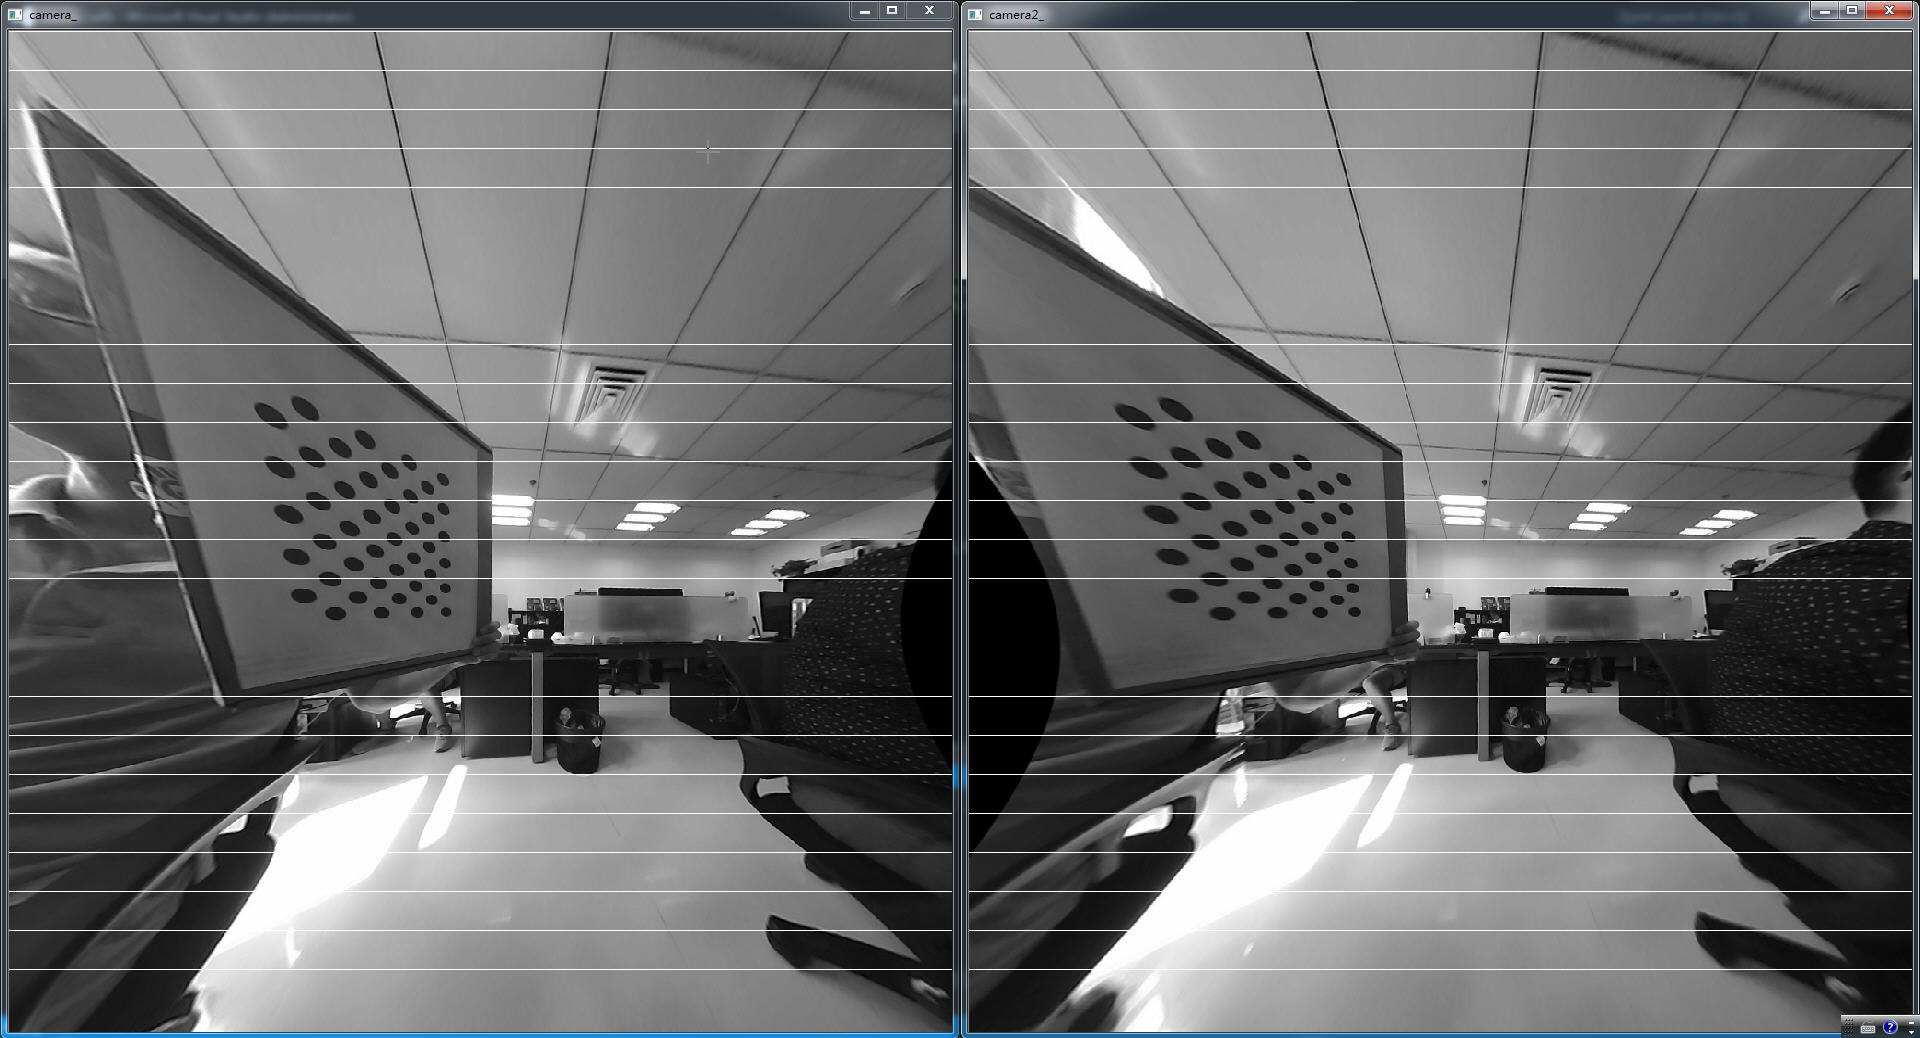 fisheye model not working with ROI? - OpenCV Q&A Forum